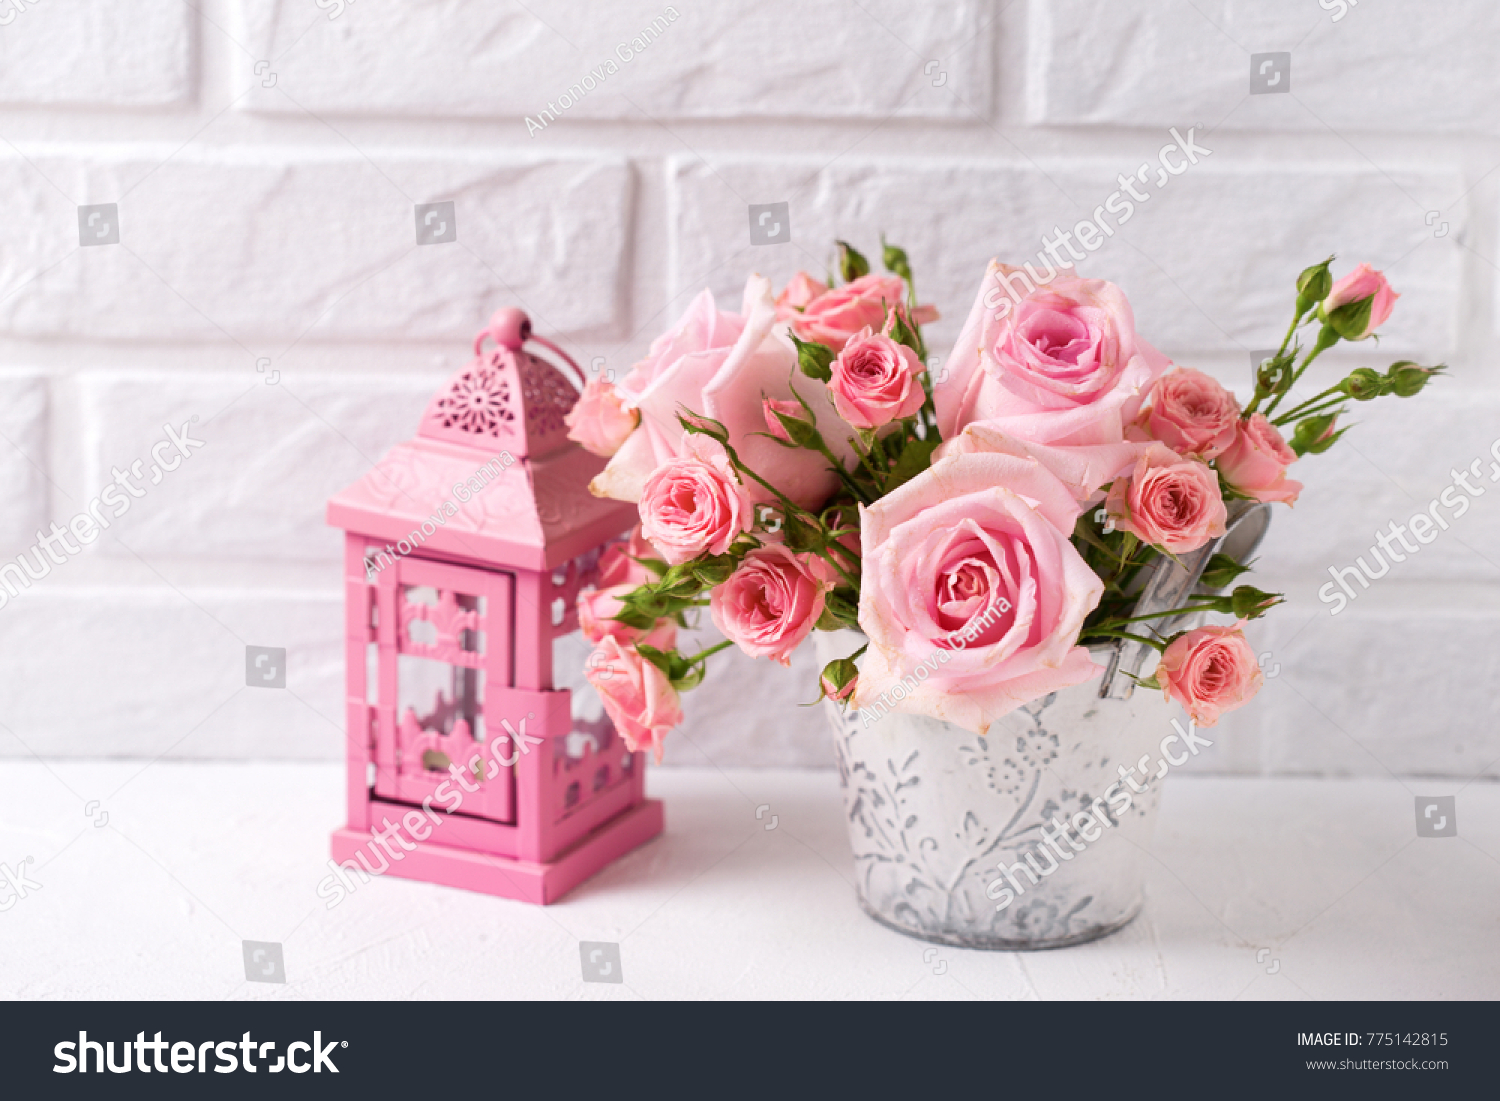 Bunch Tender Pink Roses Flowers Decorative Stock Photo Edit Now